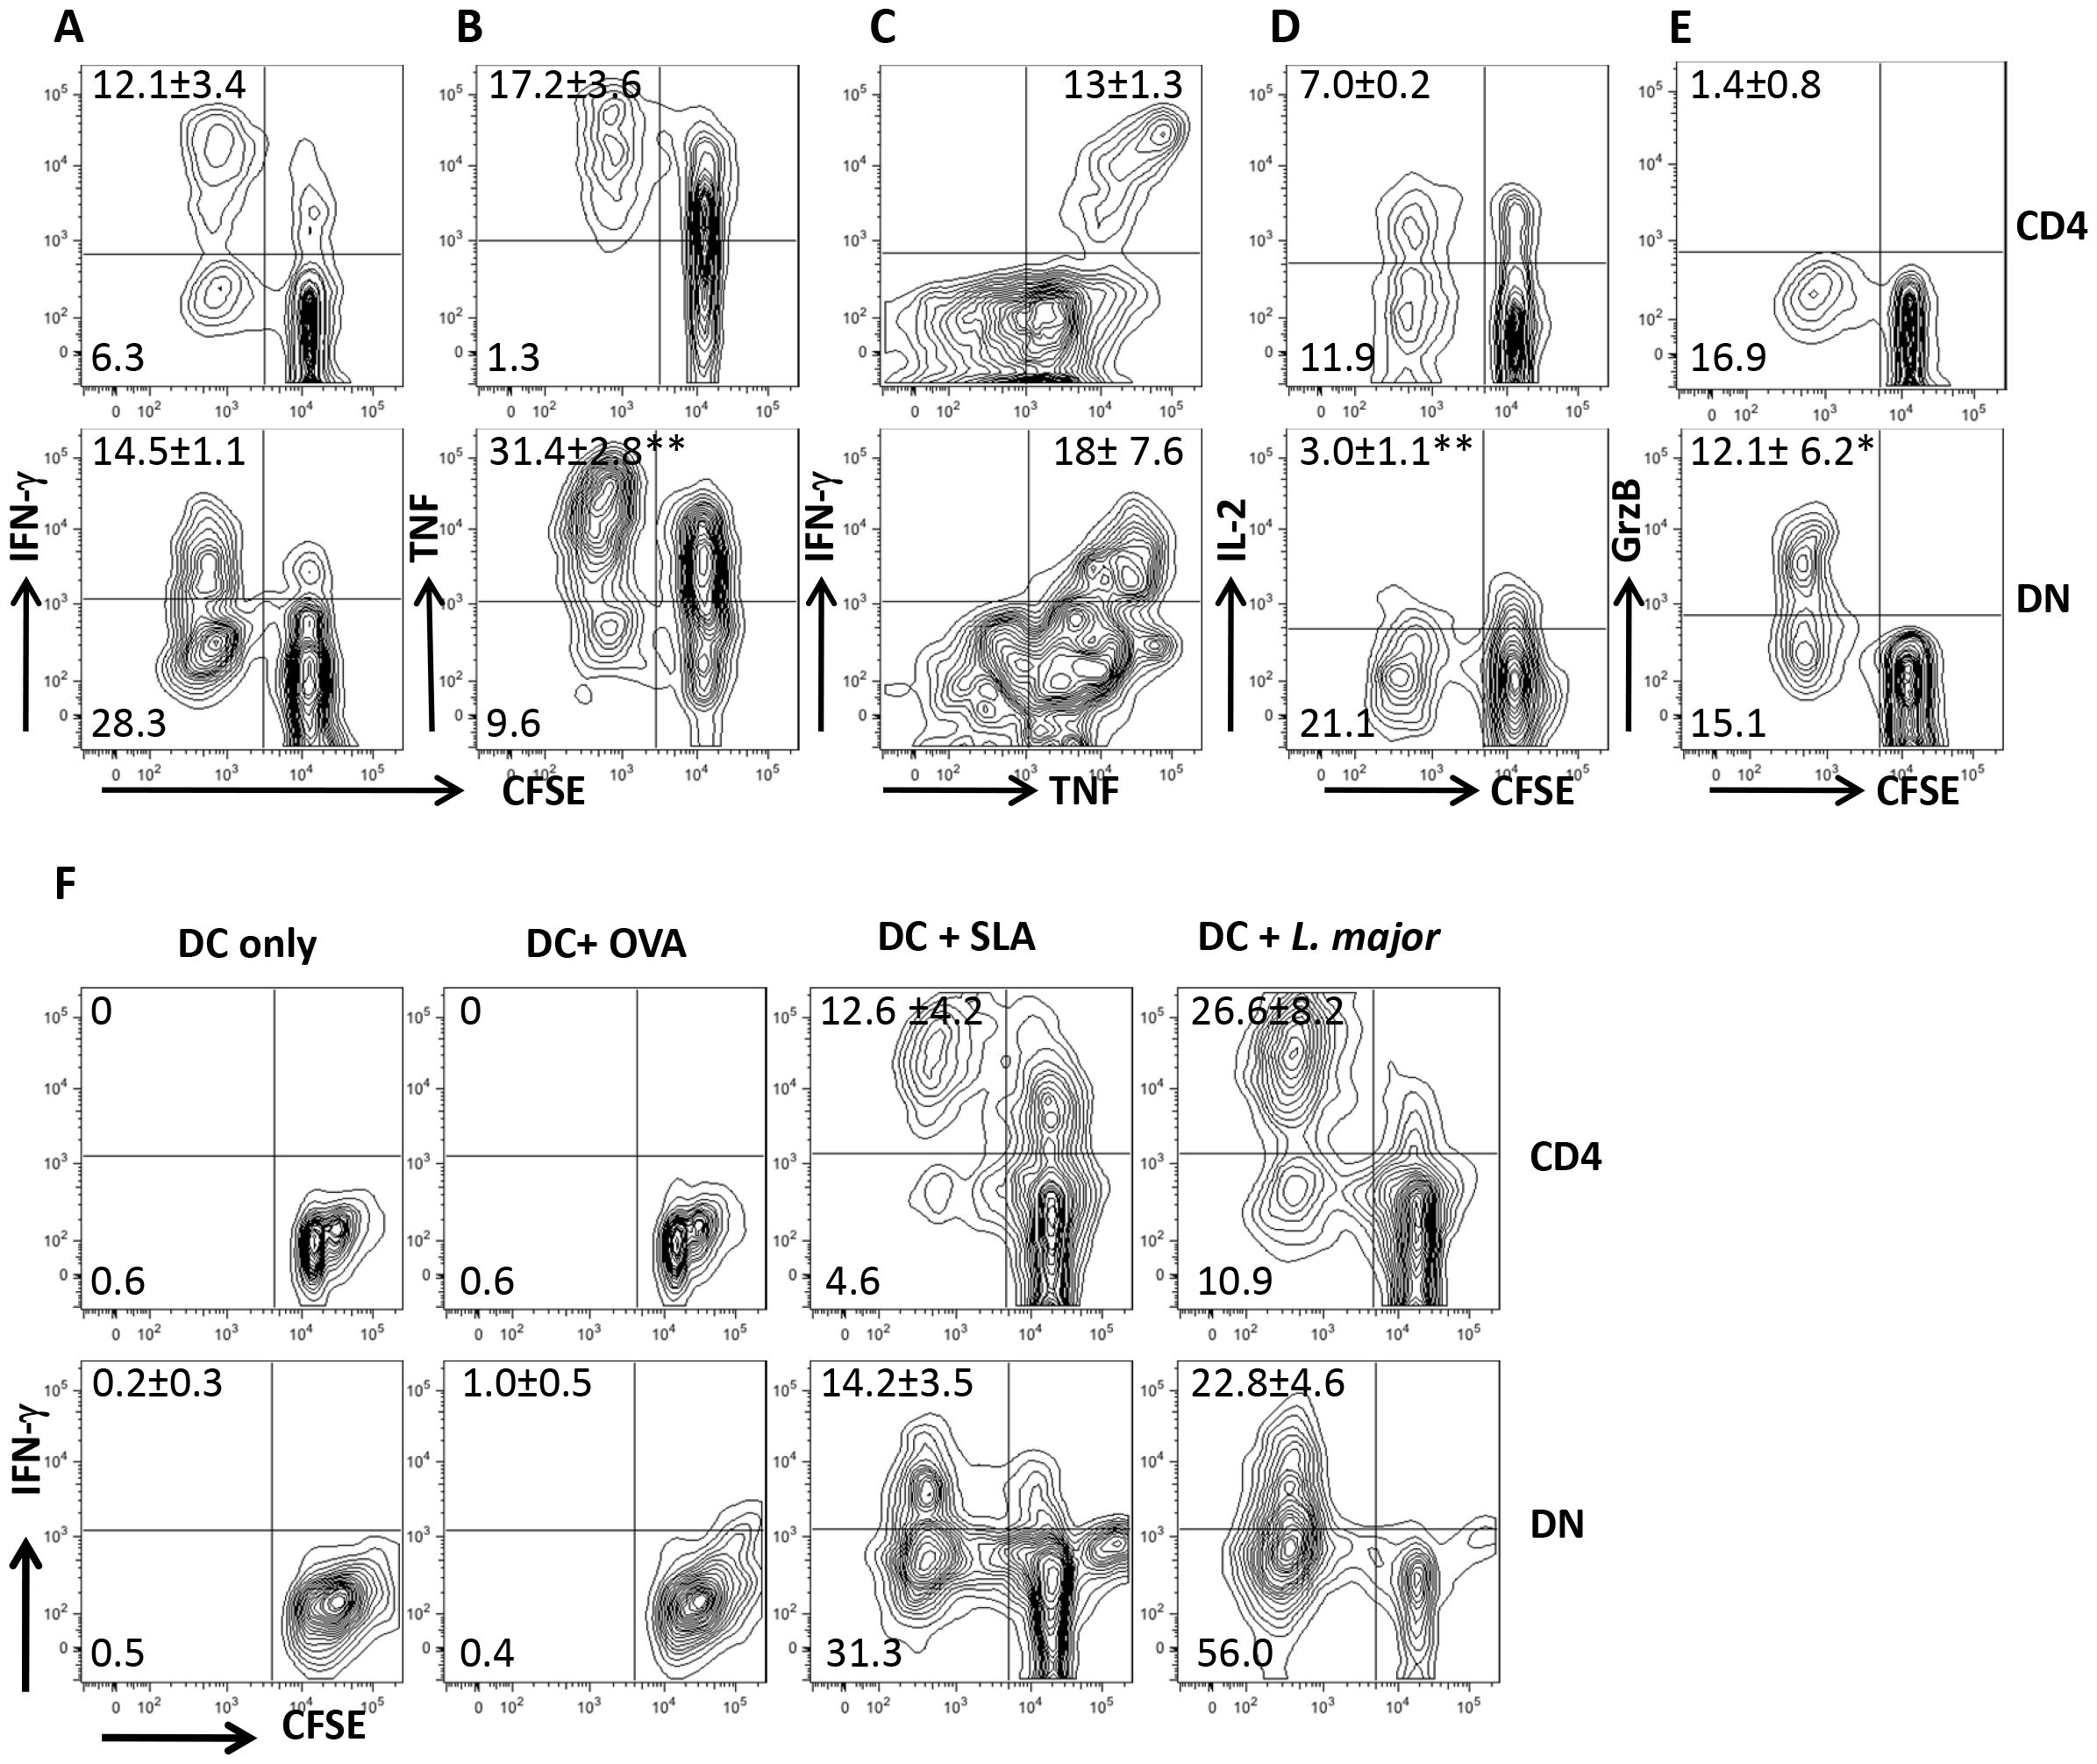 DN T cells from healed mice proliferate and produce effector cytokines following restimulation with <i>L. major</i>-infected BMDCs <i>in vitro</i>.